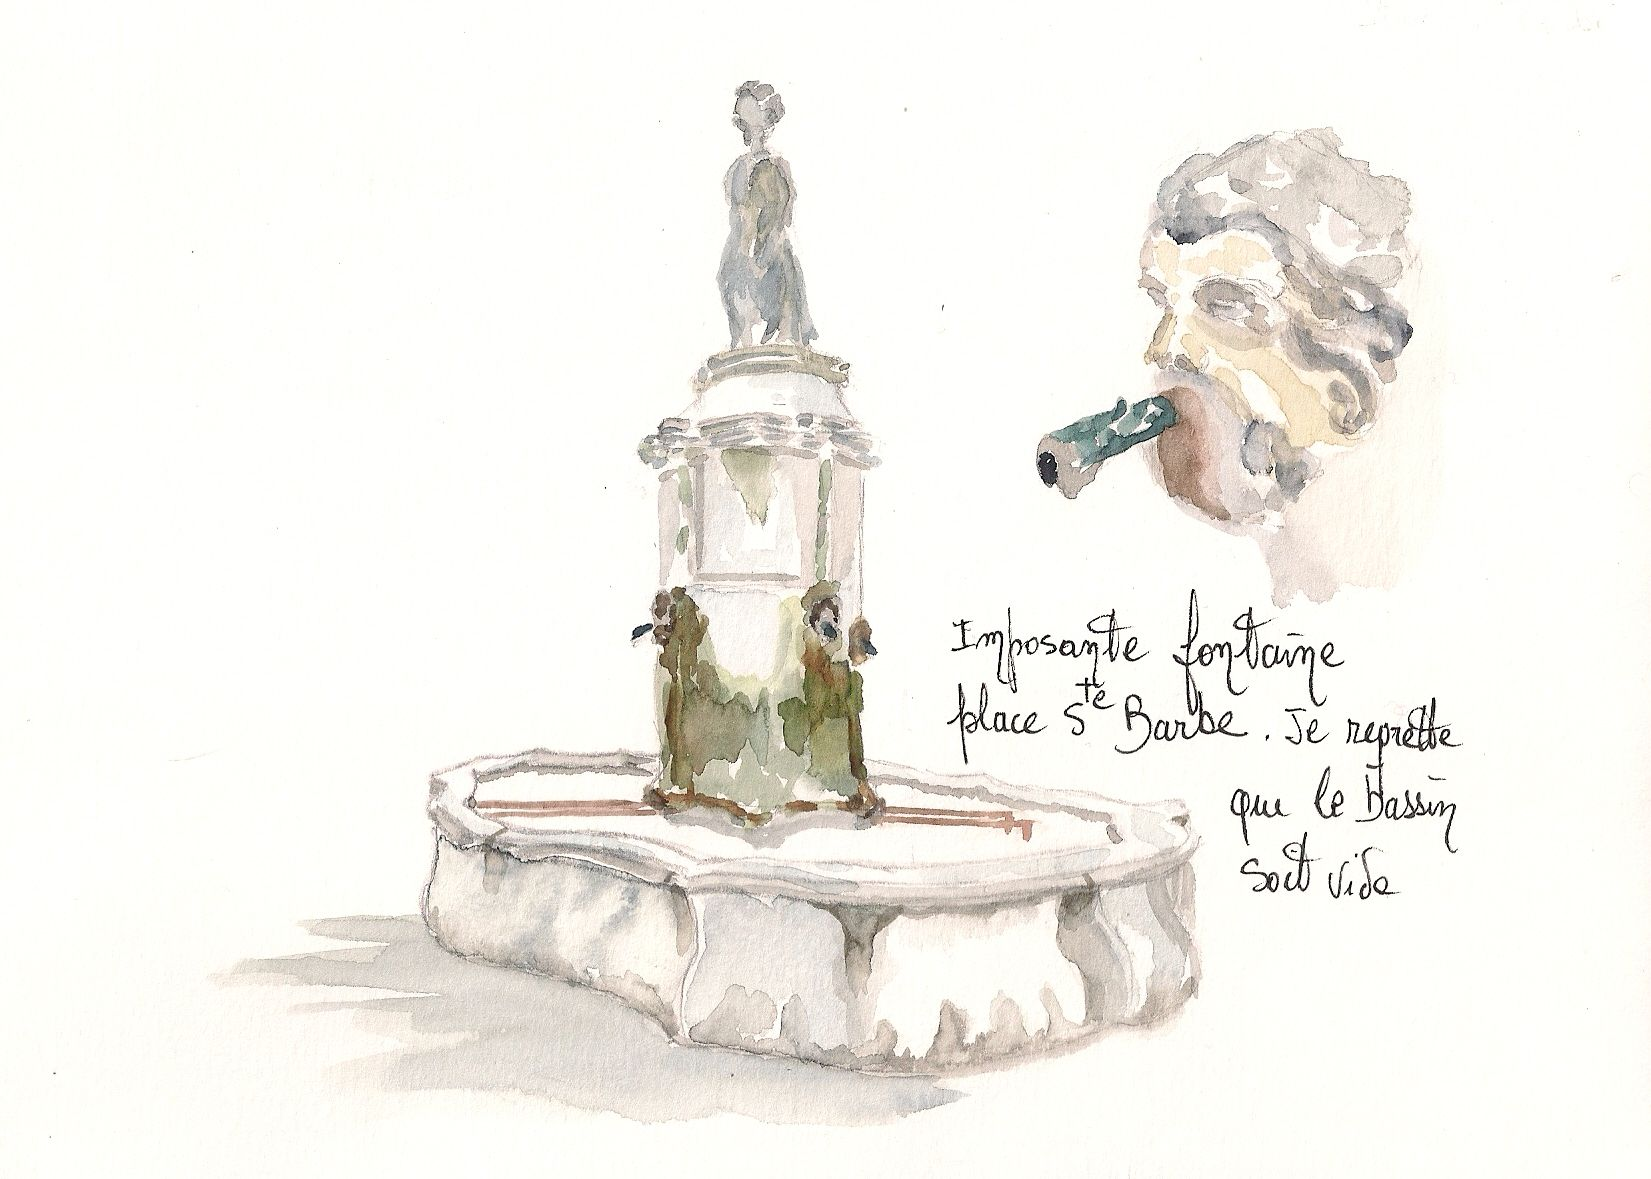 4Fontaine_place_Ste_Barbe